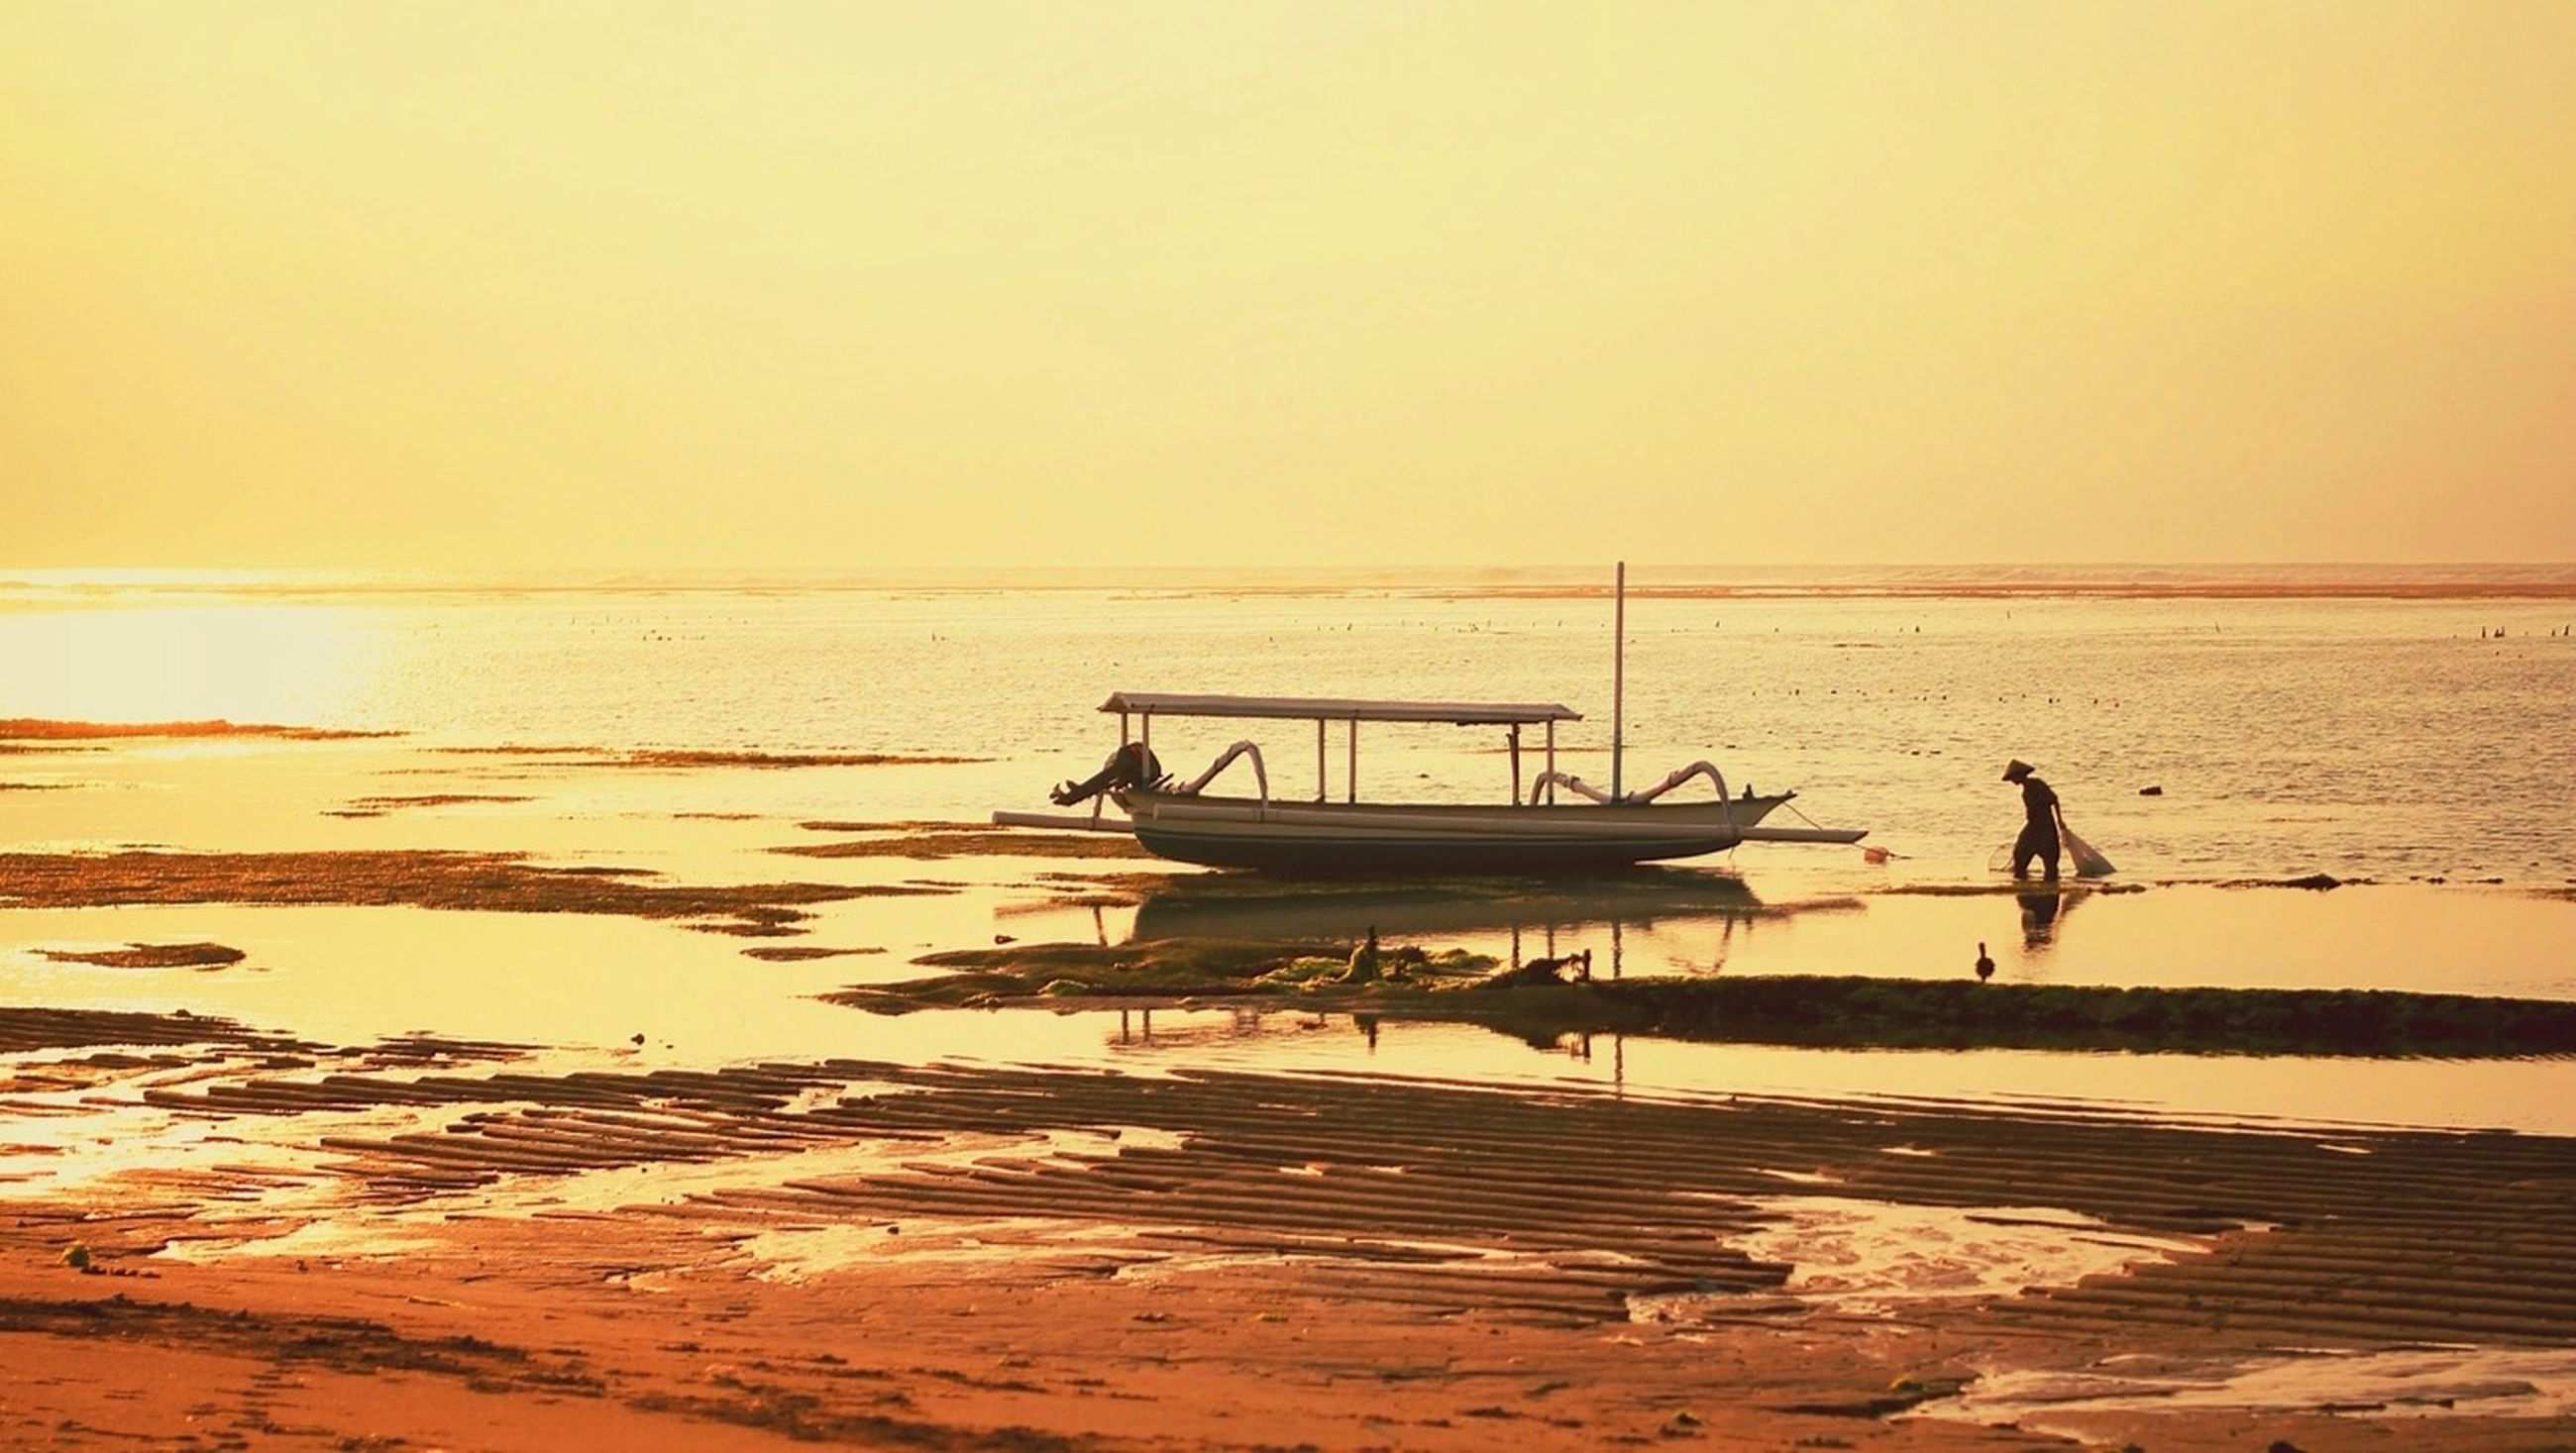 sea, water, sunset, horizon over water, beach, clear sky, tranquil scene, tranquility, scenics, beauty in nature, copy space, shore, nautical vessel, nature, transportation, orange color, boat, silhouette, idyllic, sand